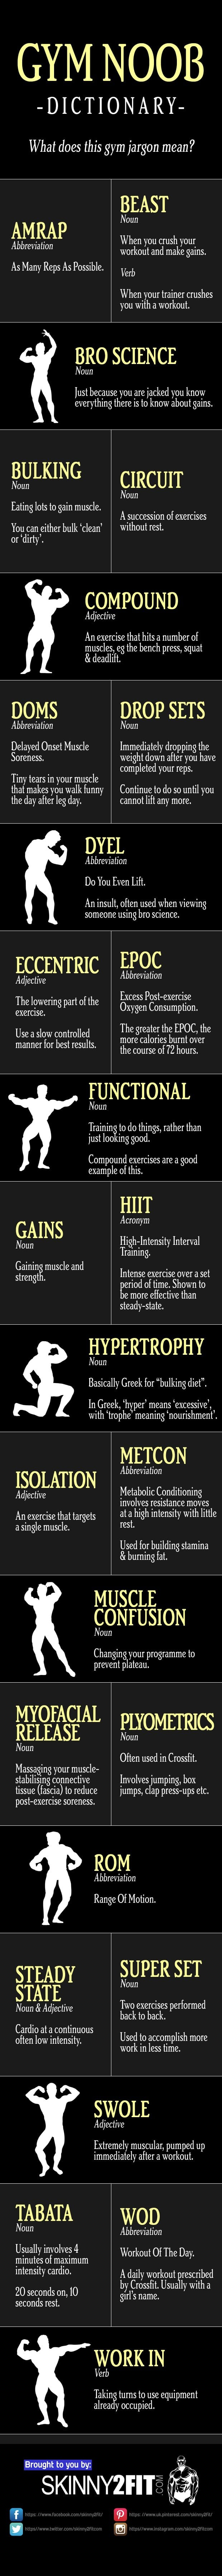 Gym Noob Dictionary